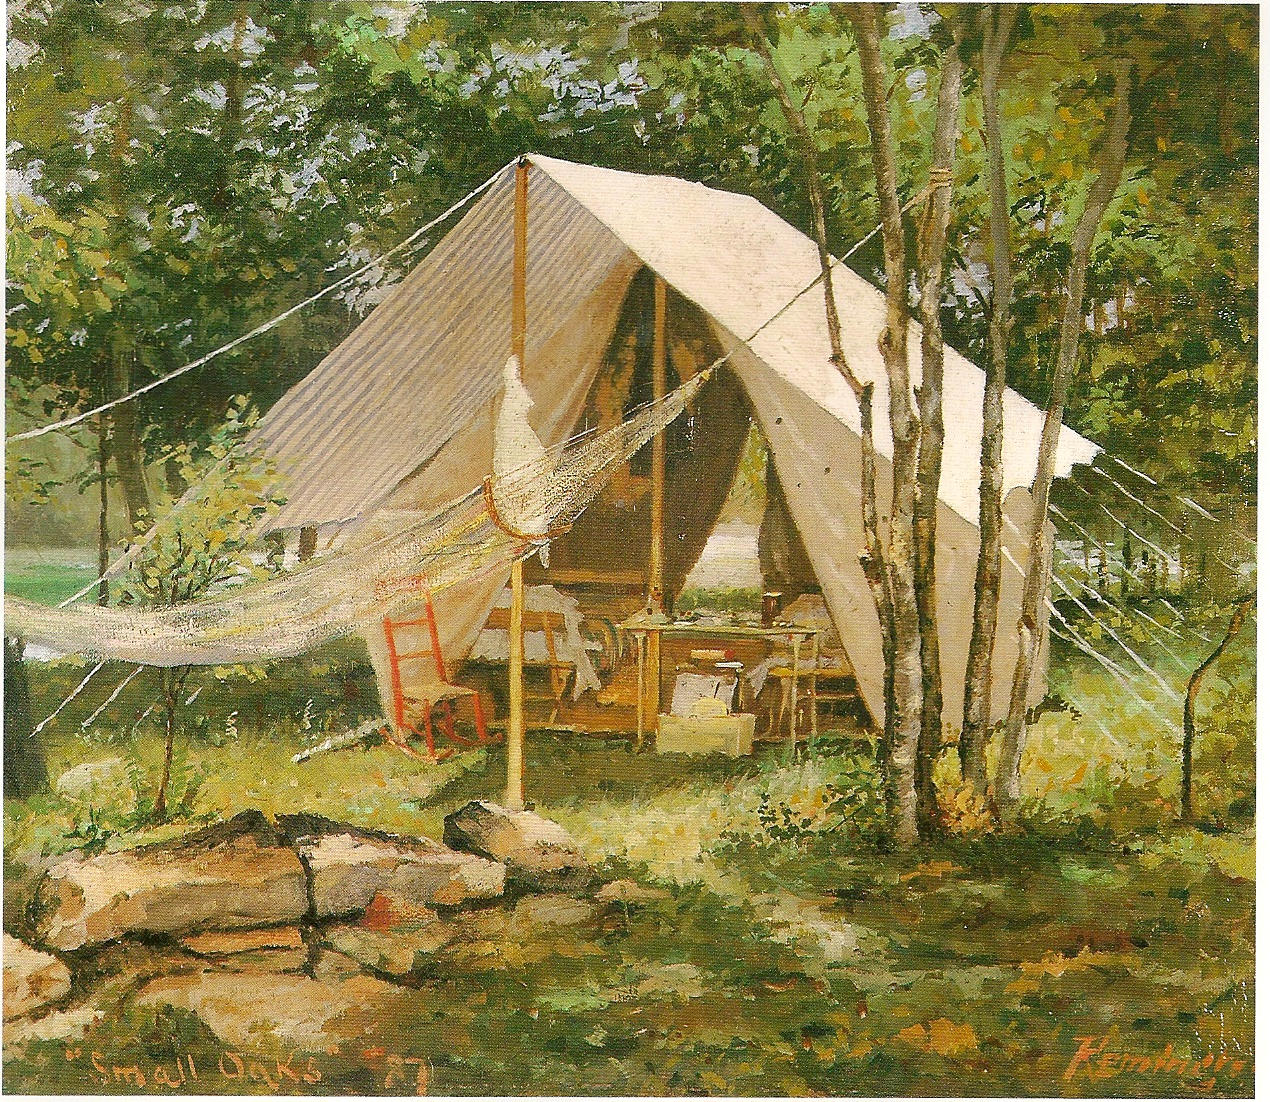 Frederic Remington's tent and camping stuff